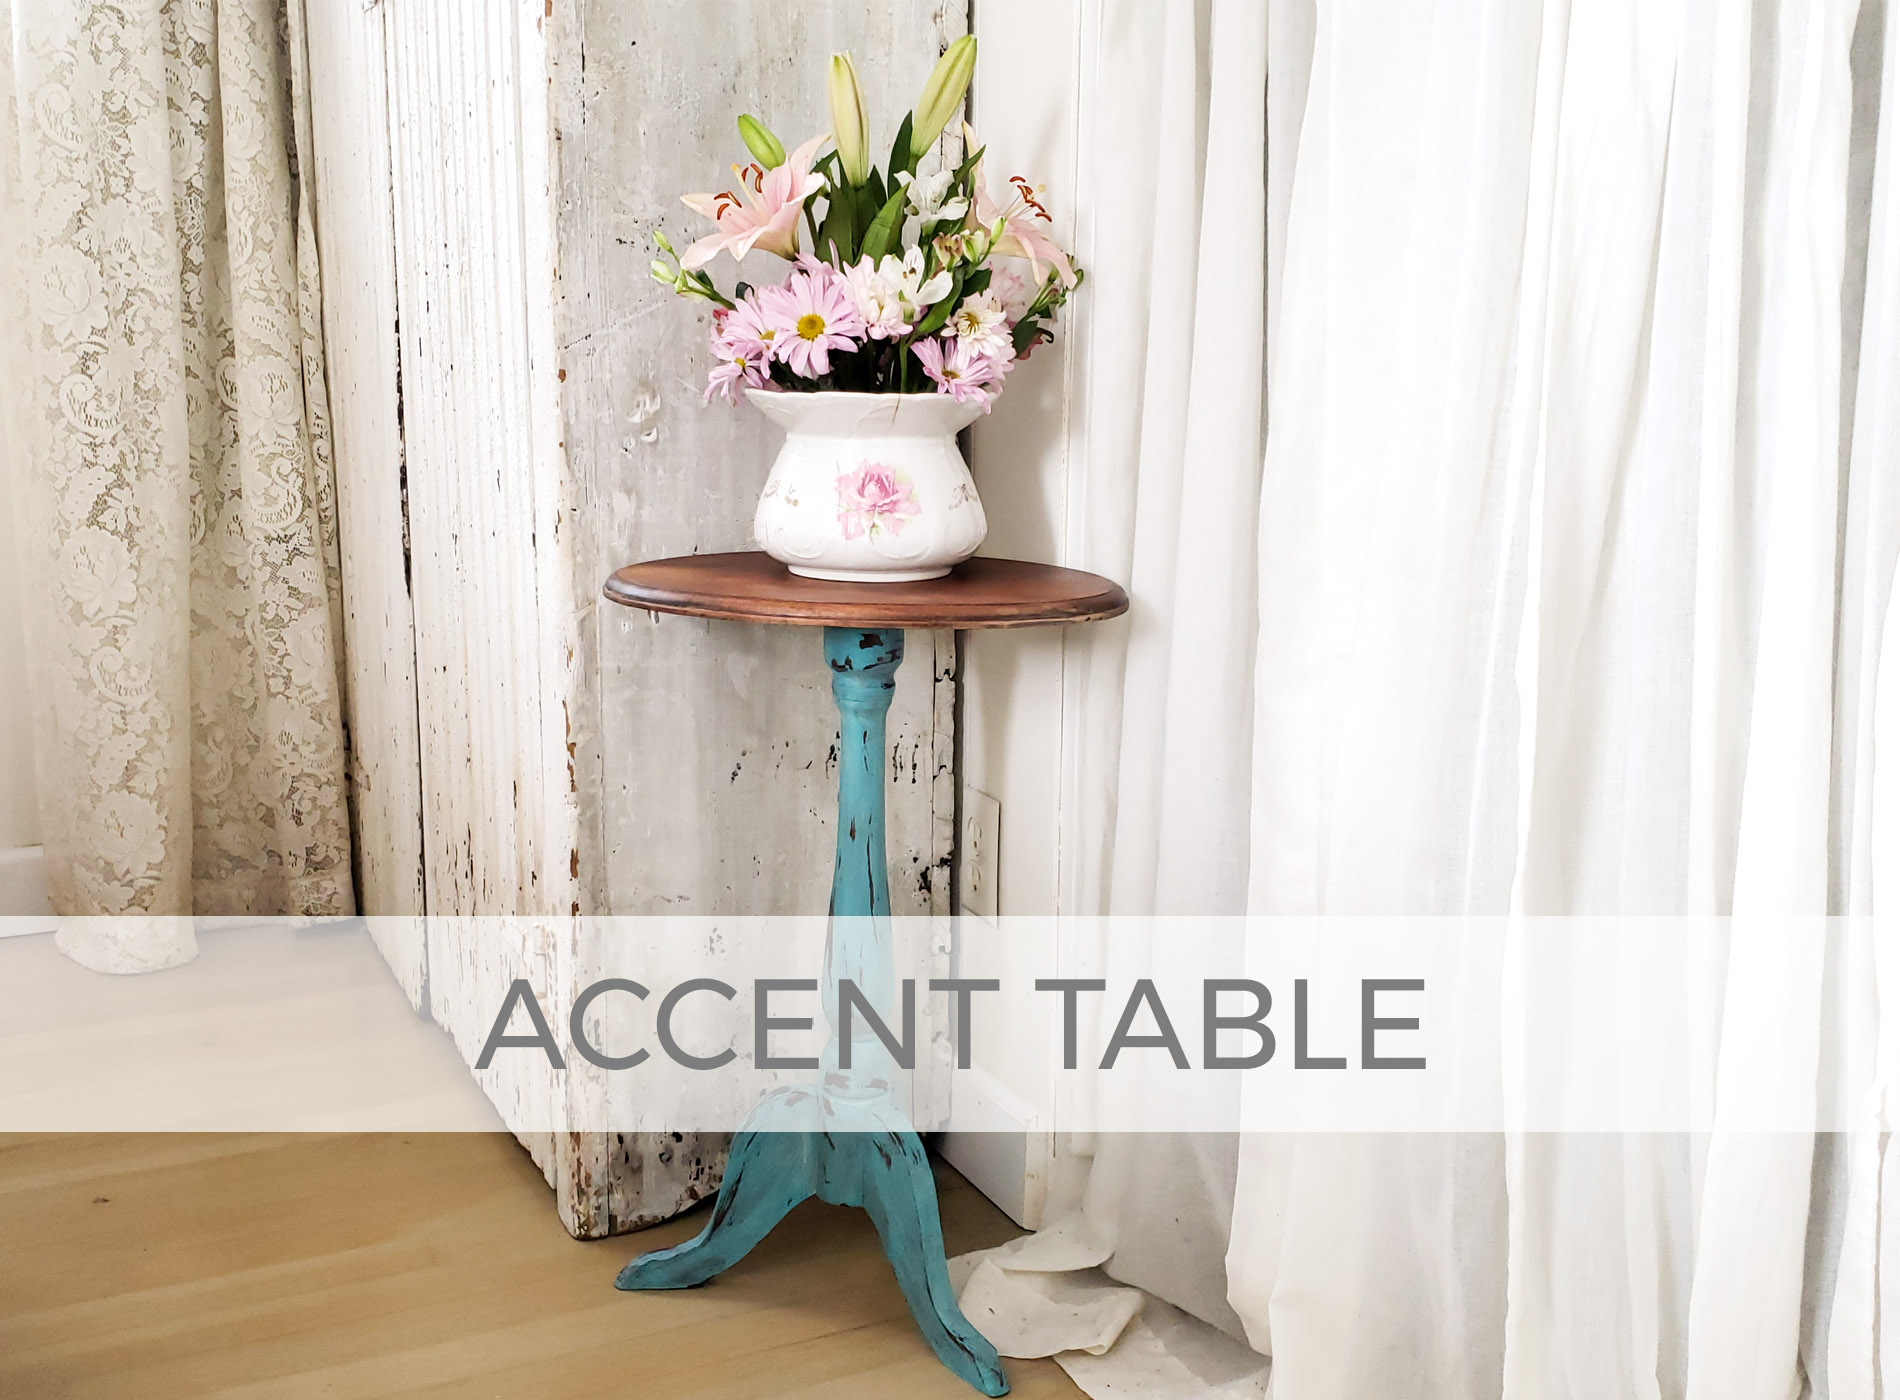 Vintage Accent Table in Aqua by Prodigal Pieces | prodigalpieces.com